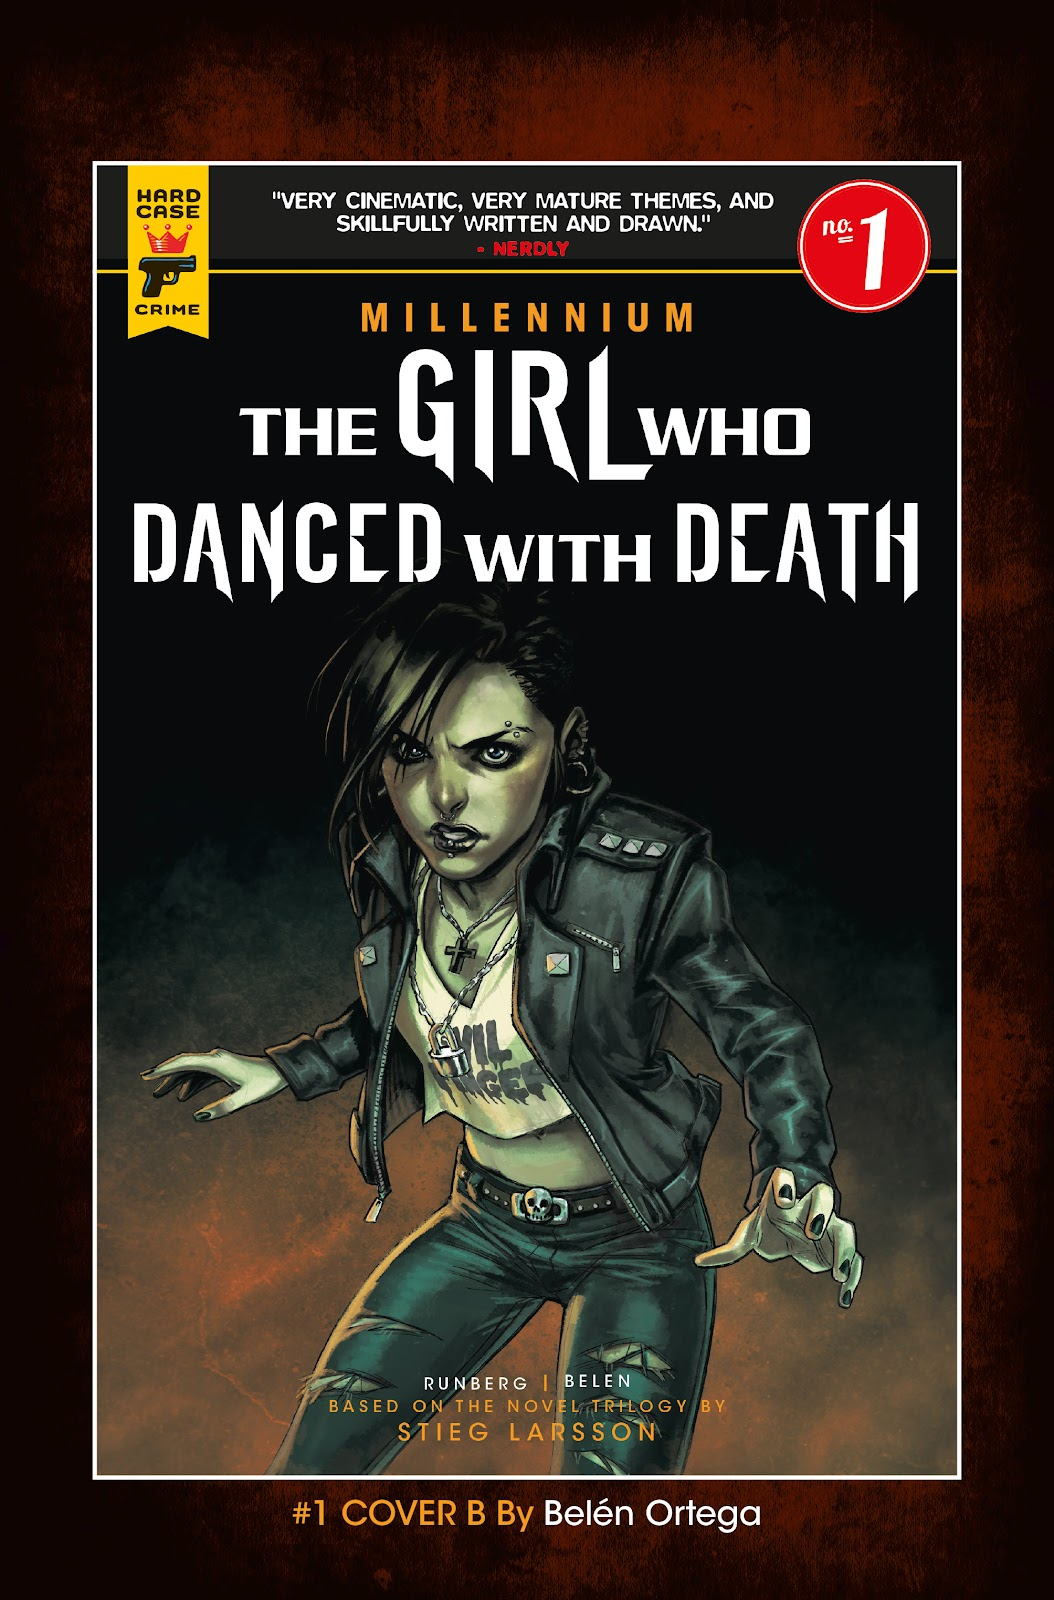 Read online Millennium: The Girl Who Danced With Death comic -  Issue #1 - 59